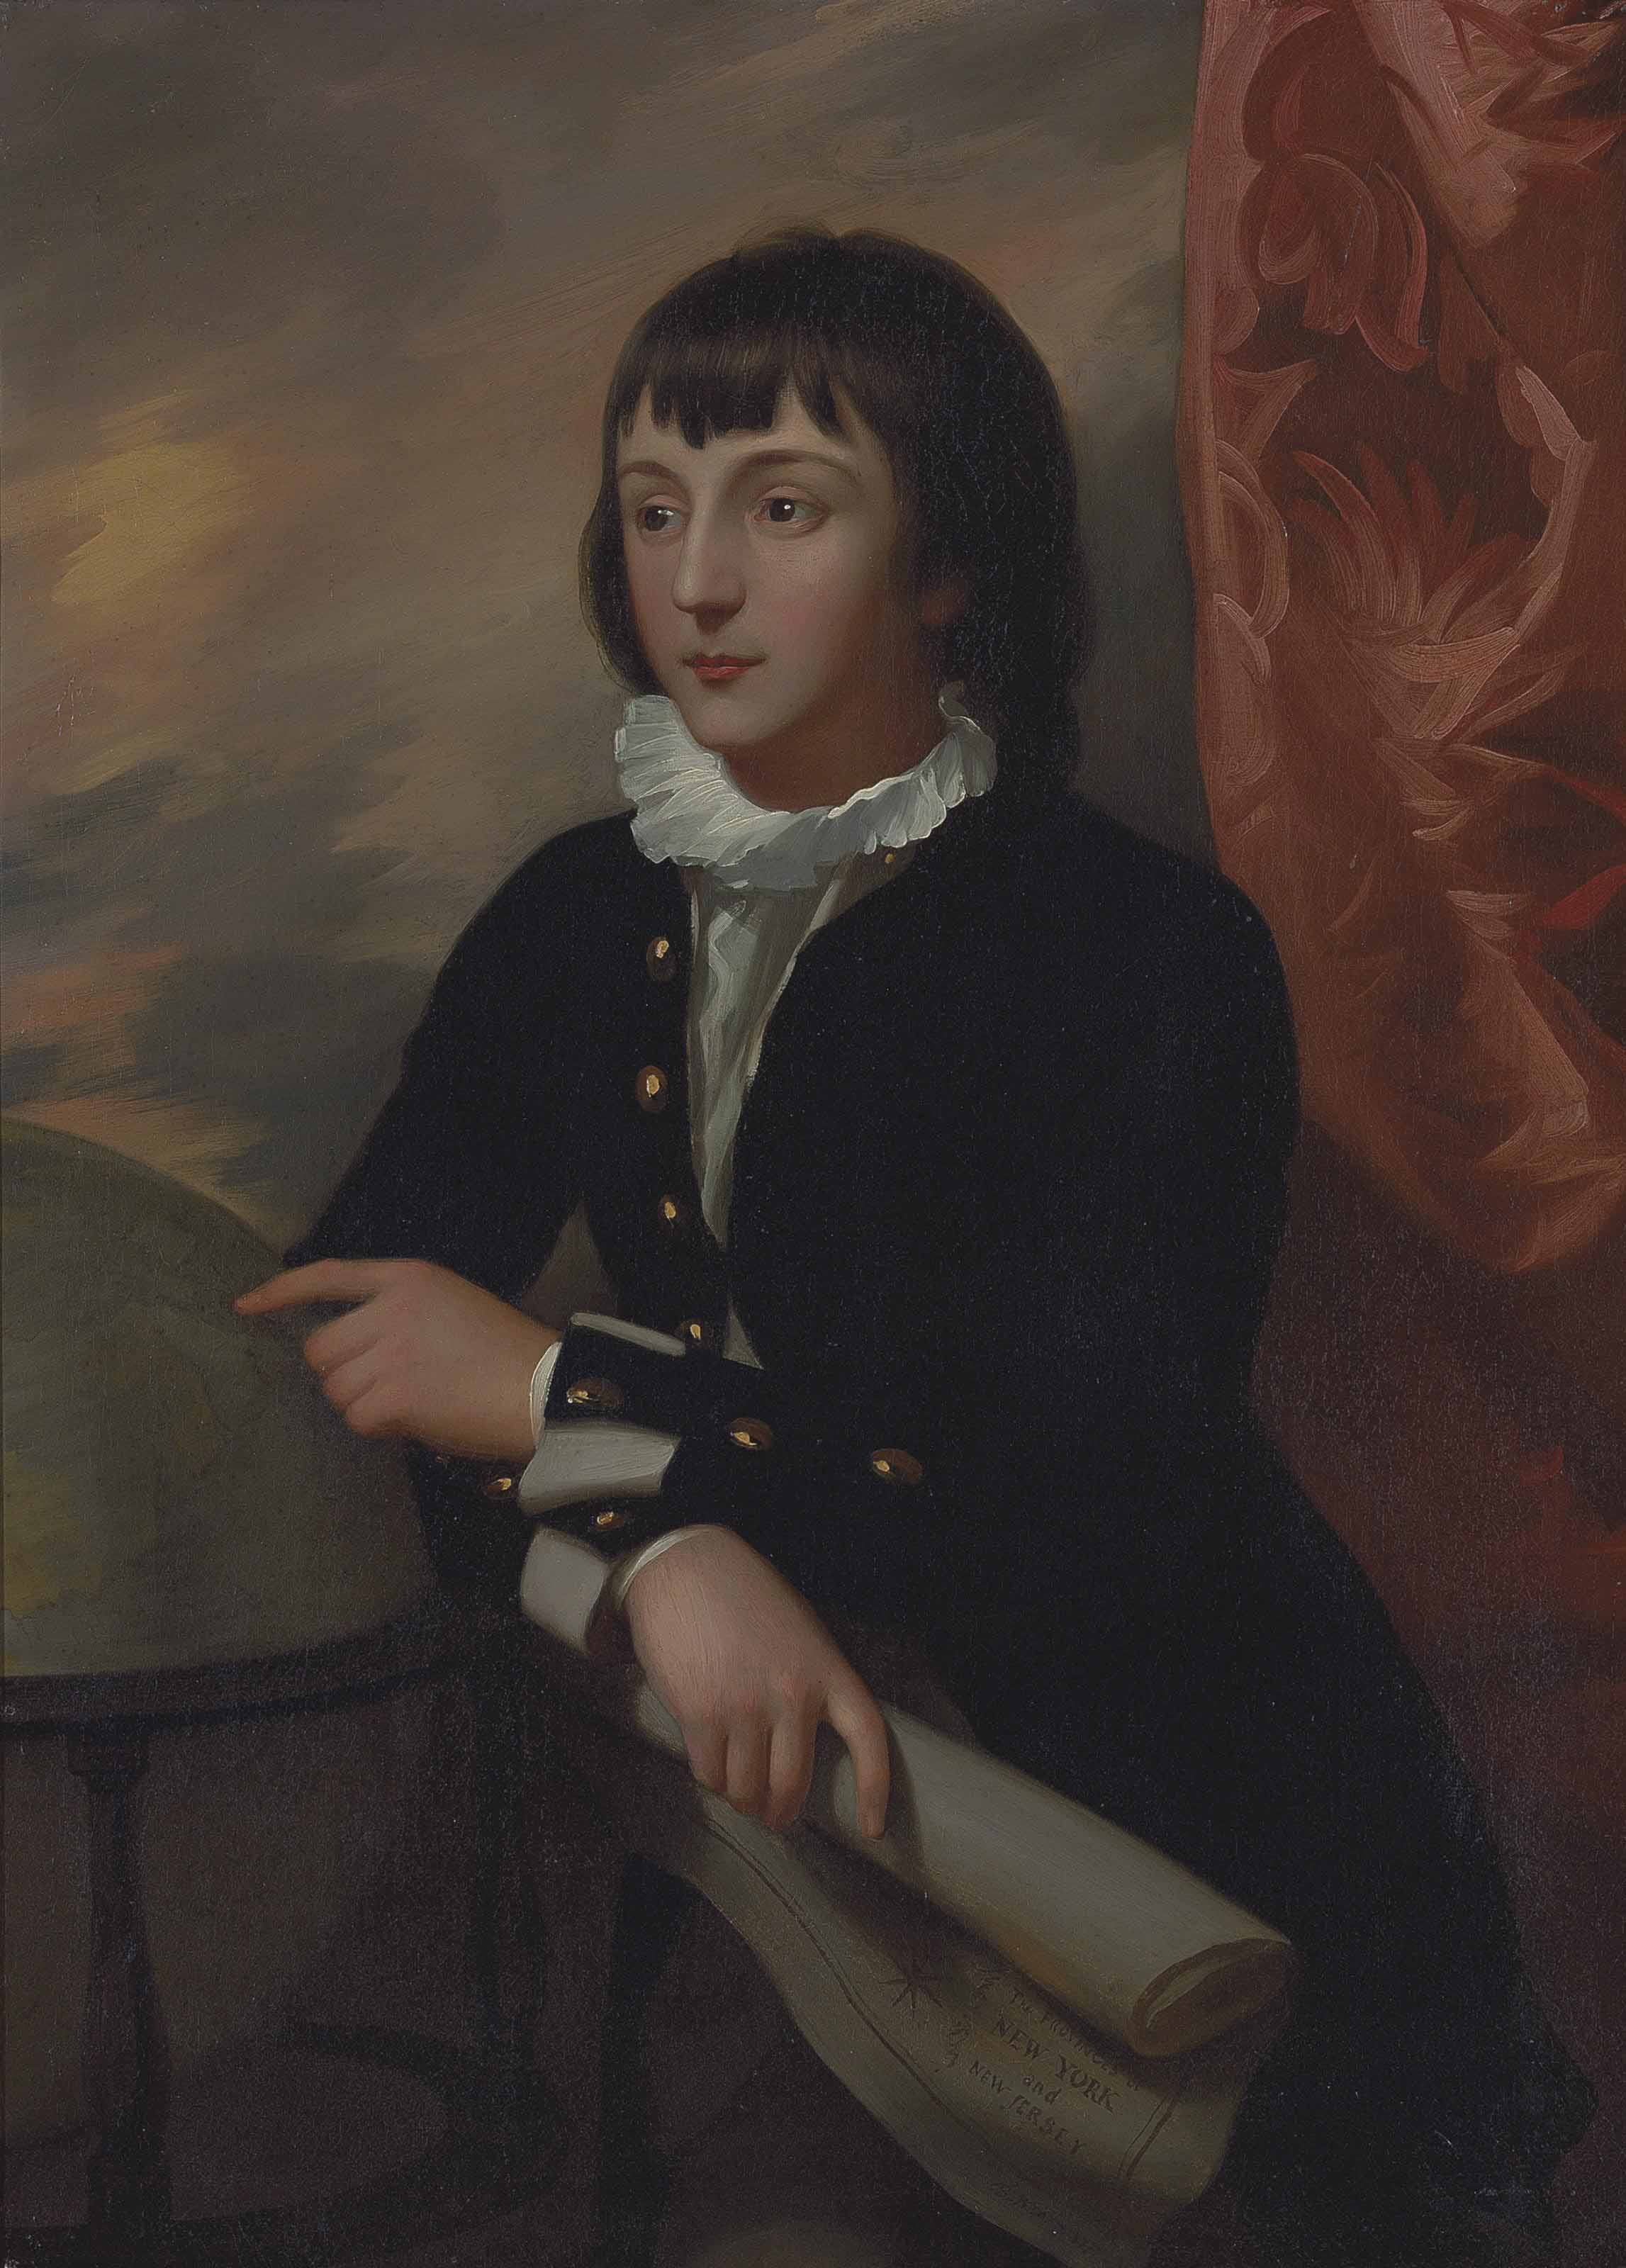 Portrait of the Hon. William Wellesley-Pole, 1st Baron Maryborough, and 3rd Earl of Mornington (1763-1845), three-quarter-length, in a dark coat and white shirt with a ruff, leaning on a globe and holding a scroll of paper, standing by a draped curtain